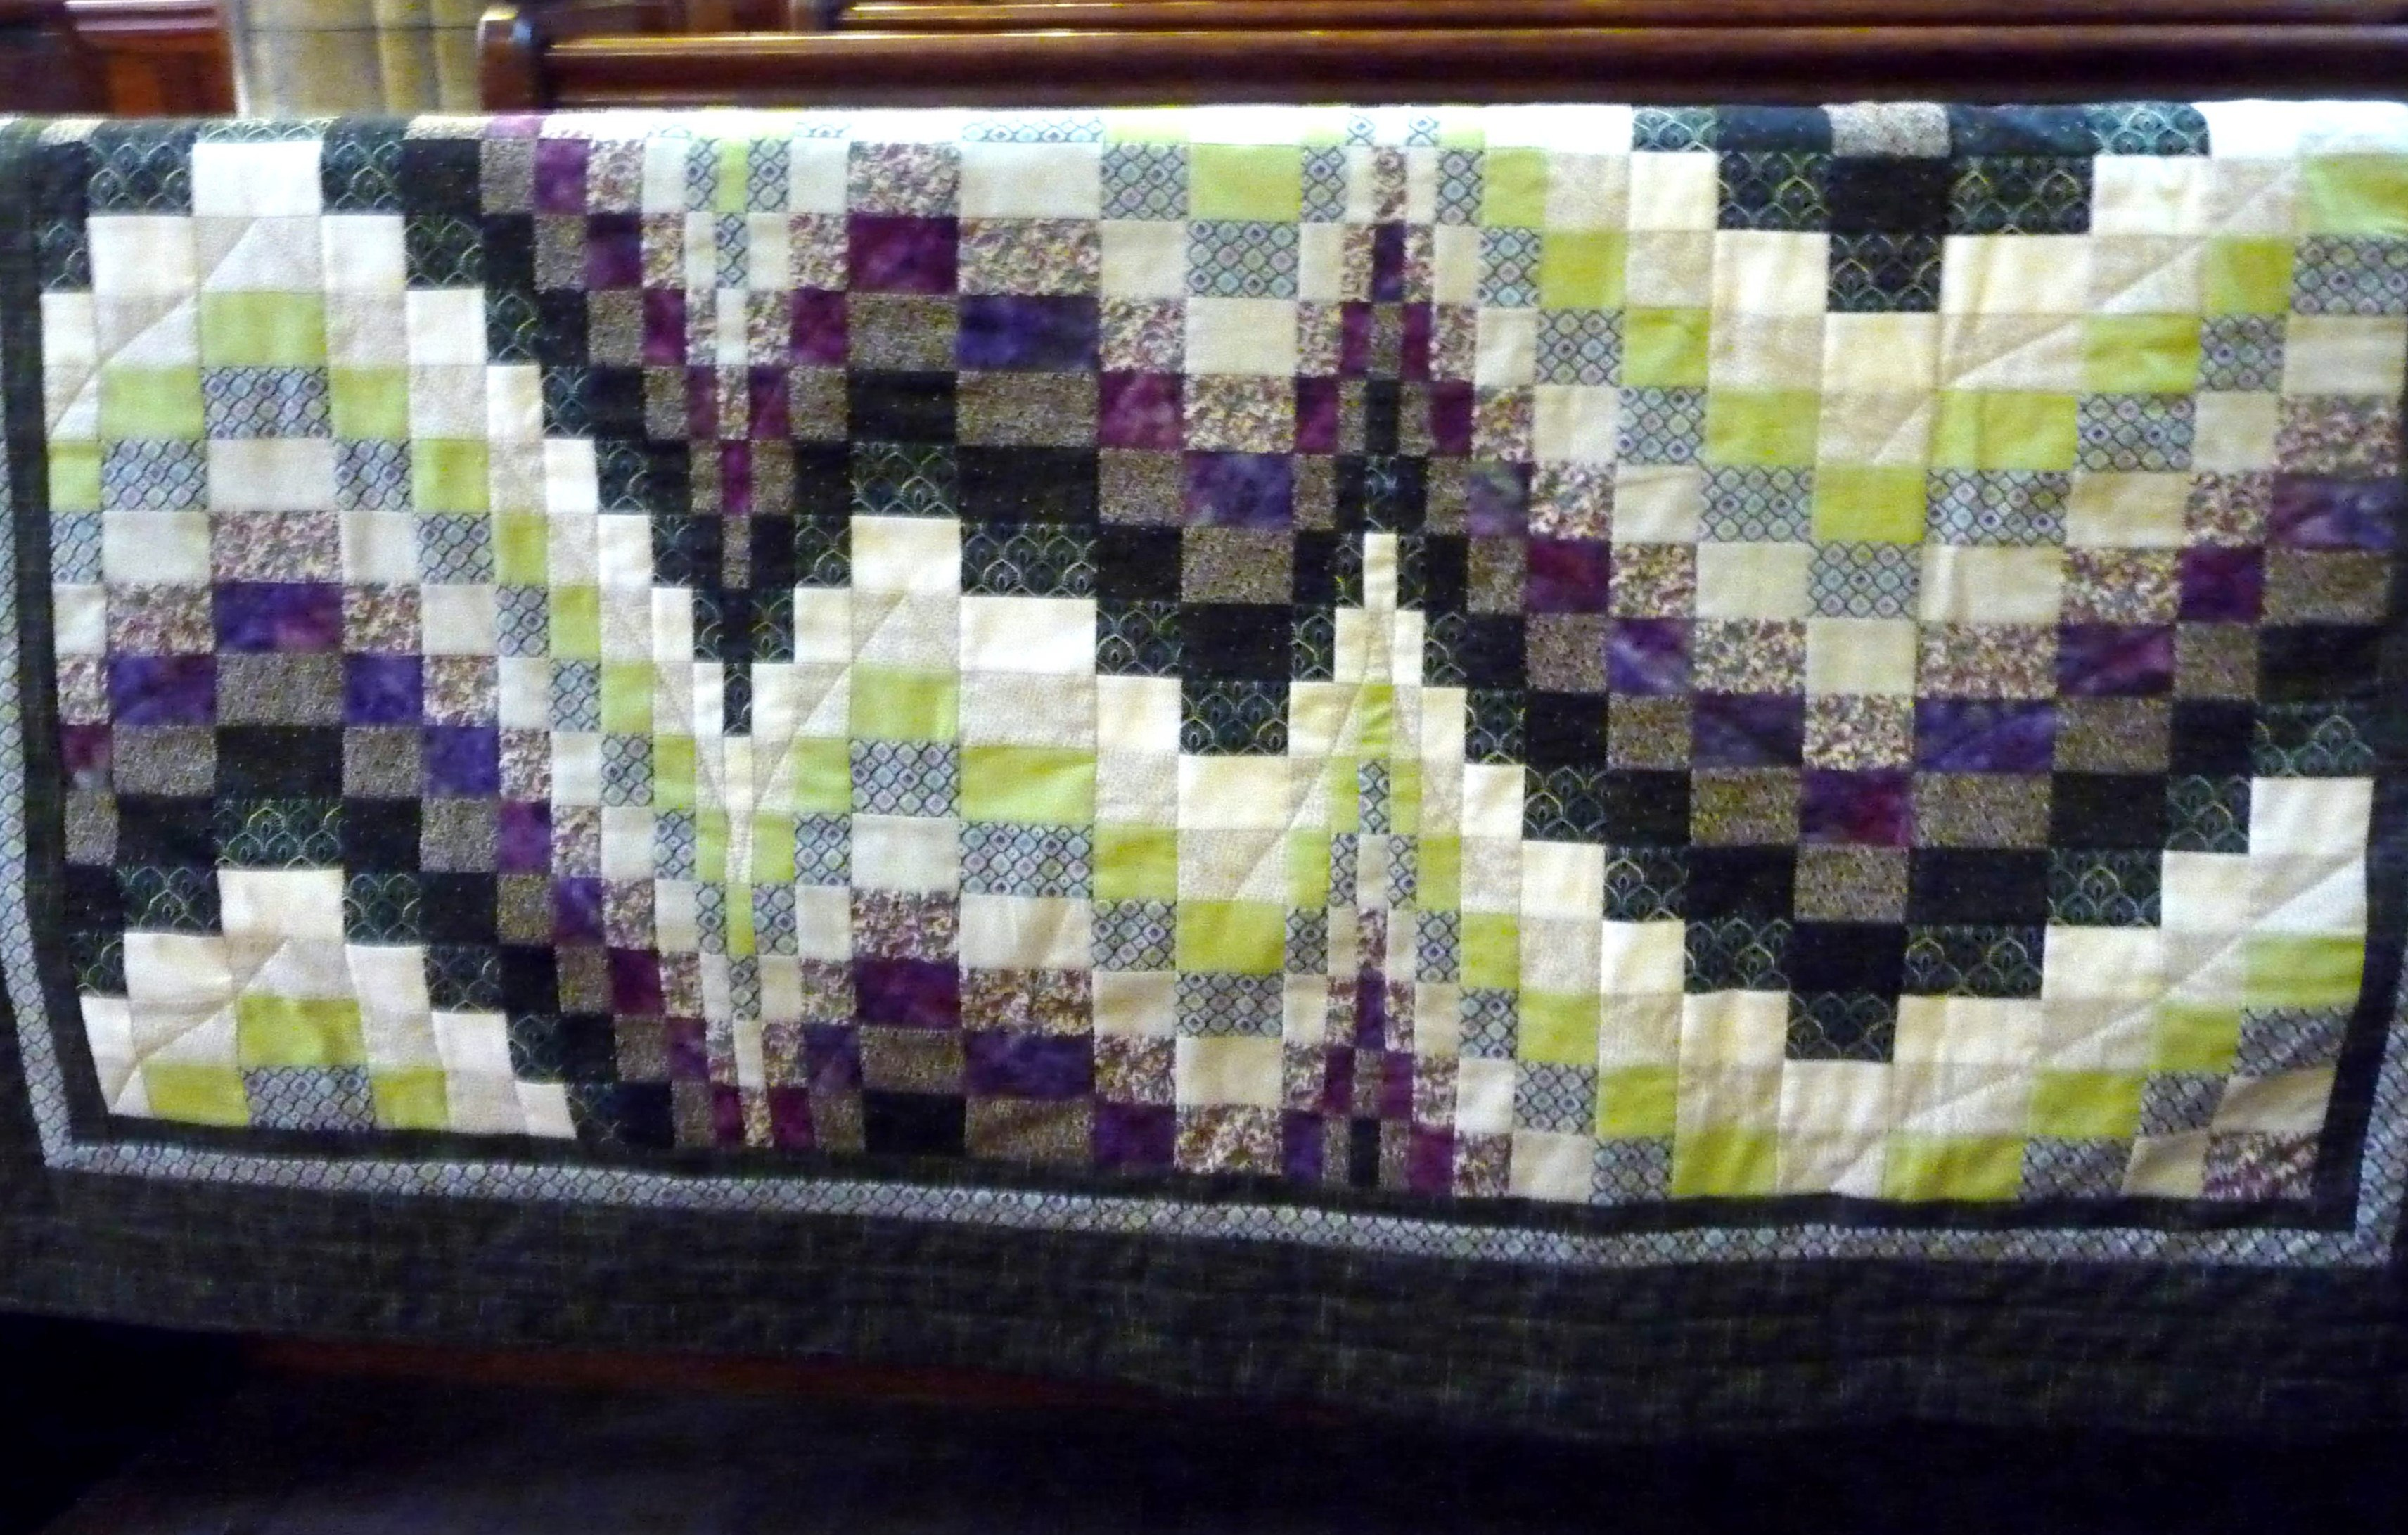 Quilt by Sue Warn, Stitchin' Sisters Group